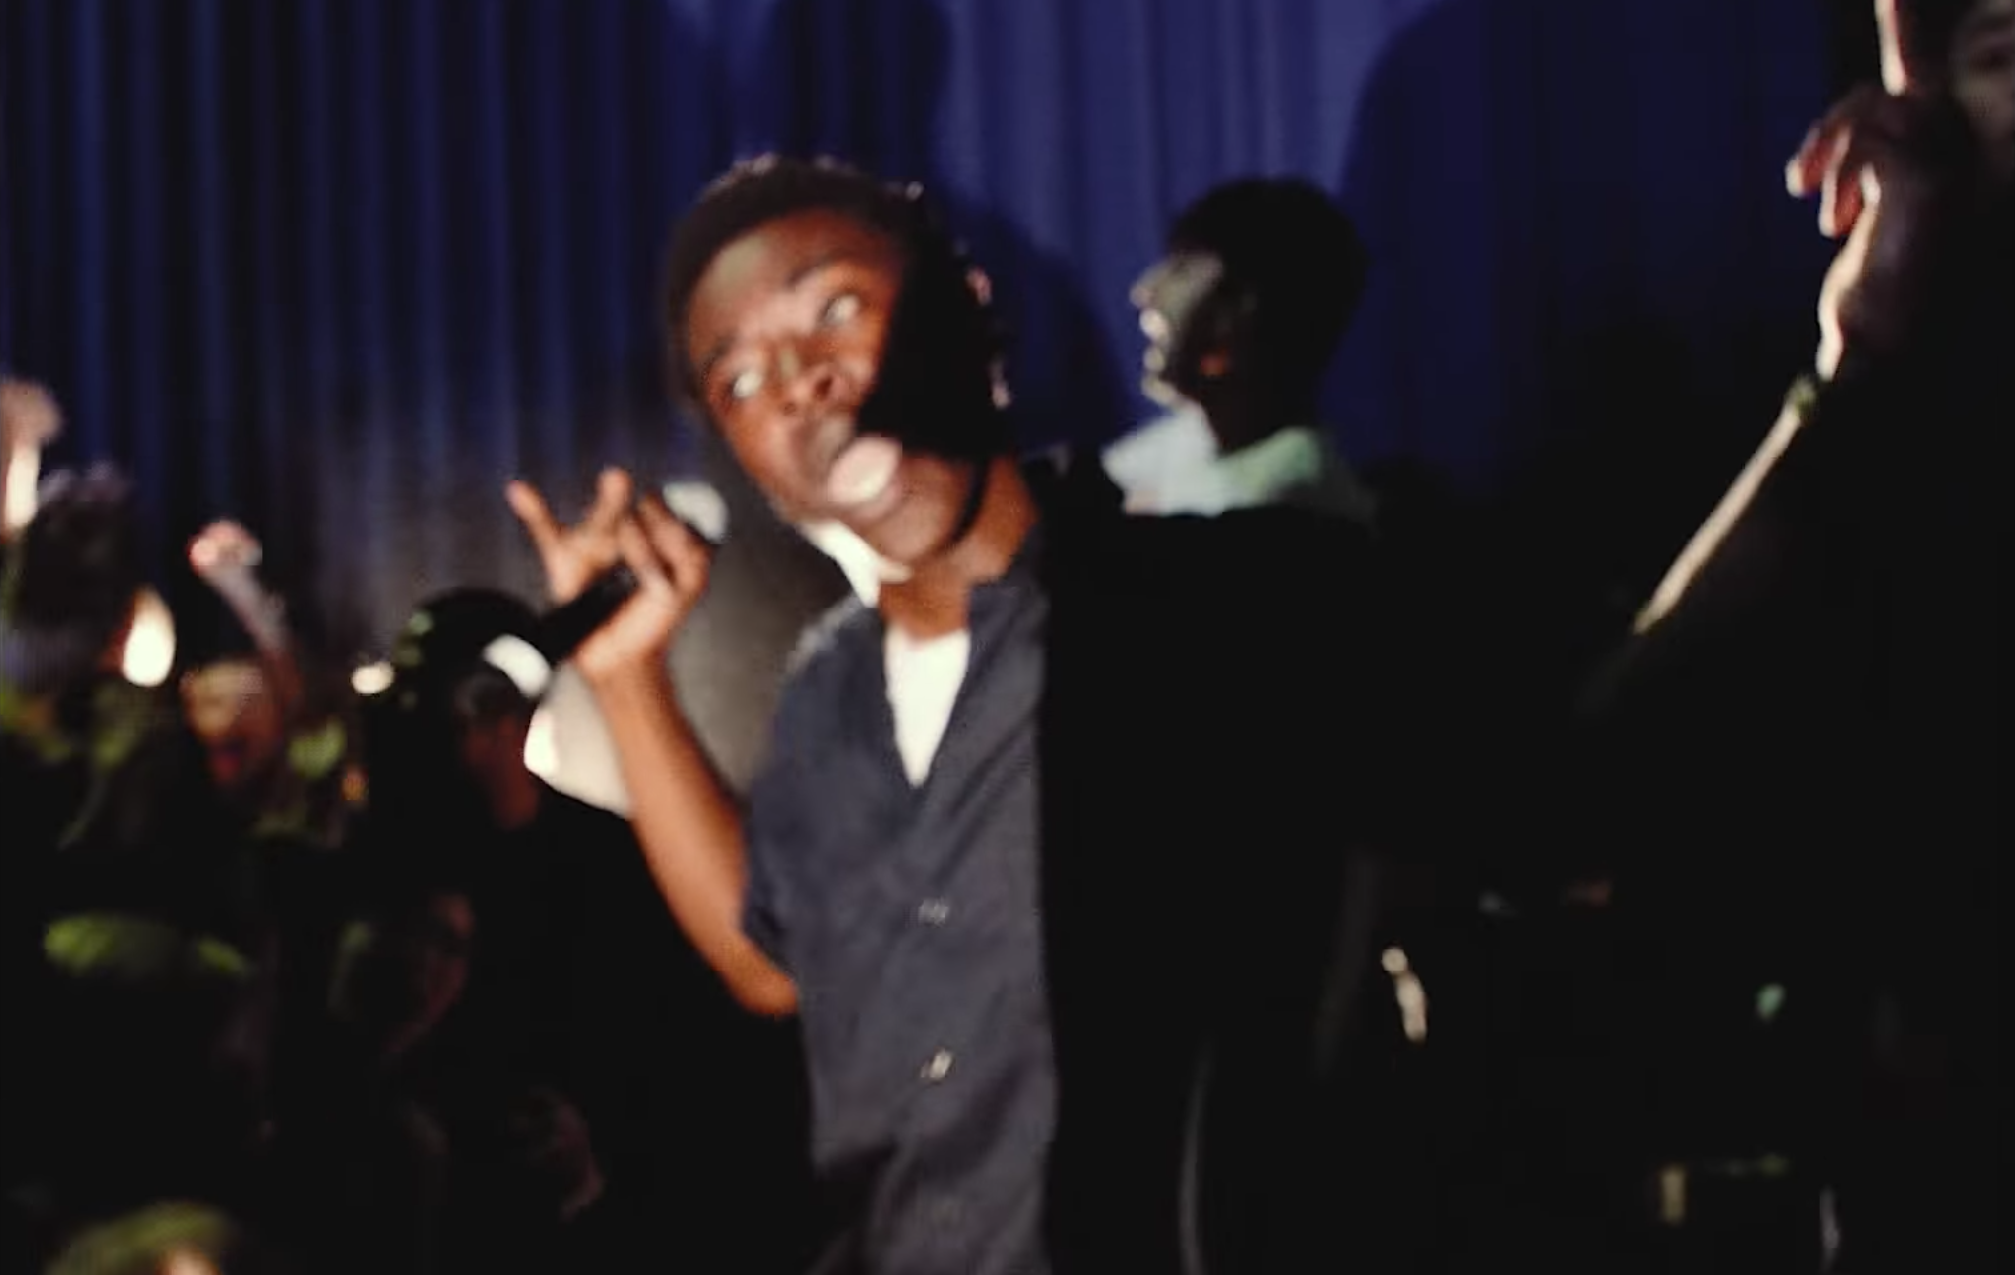 Brockhampton mingle with the crowd in 'New Orleans' video